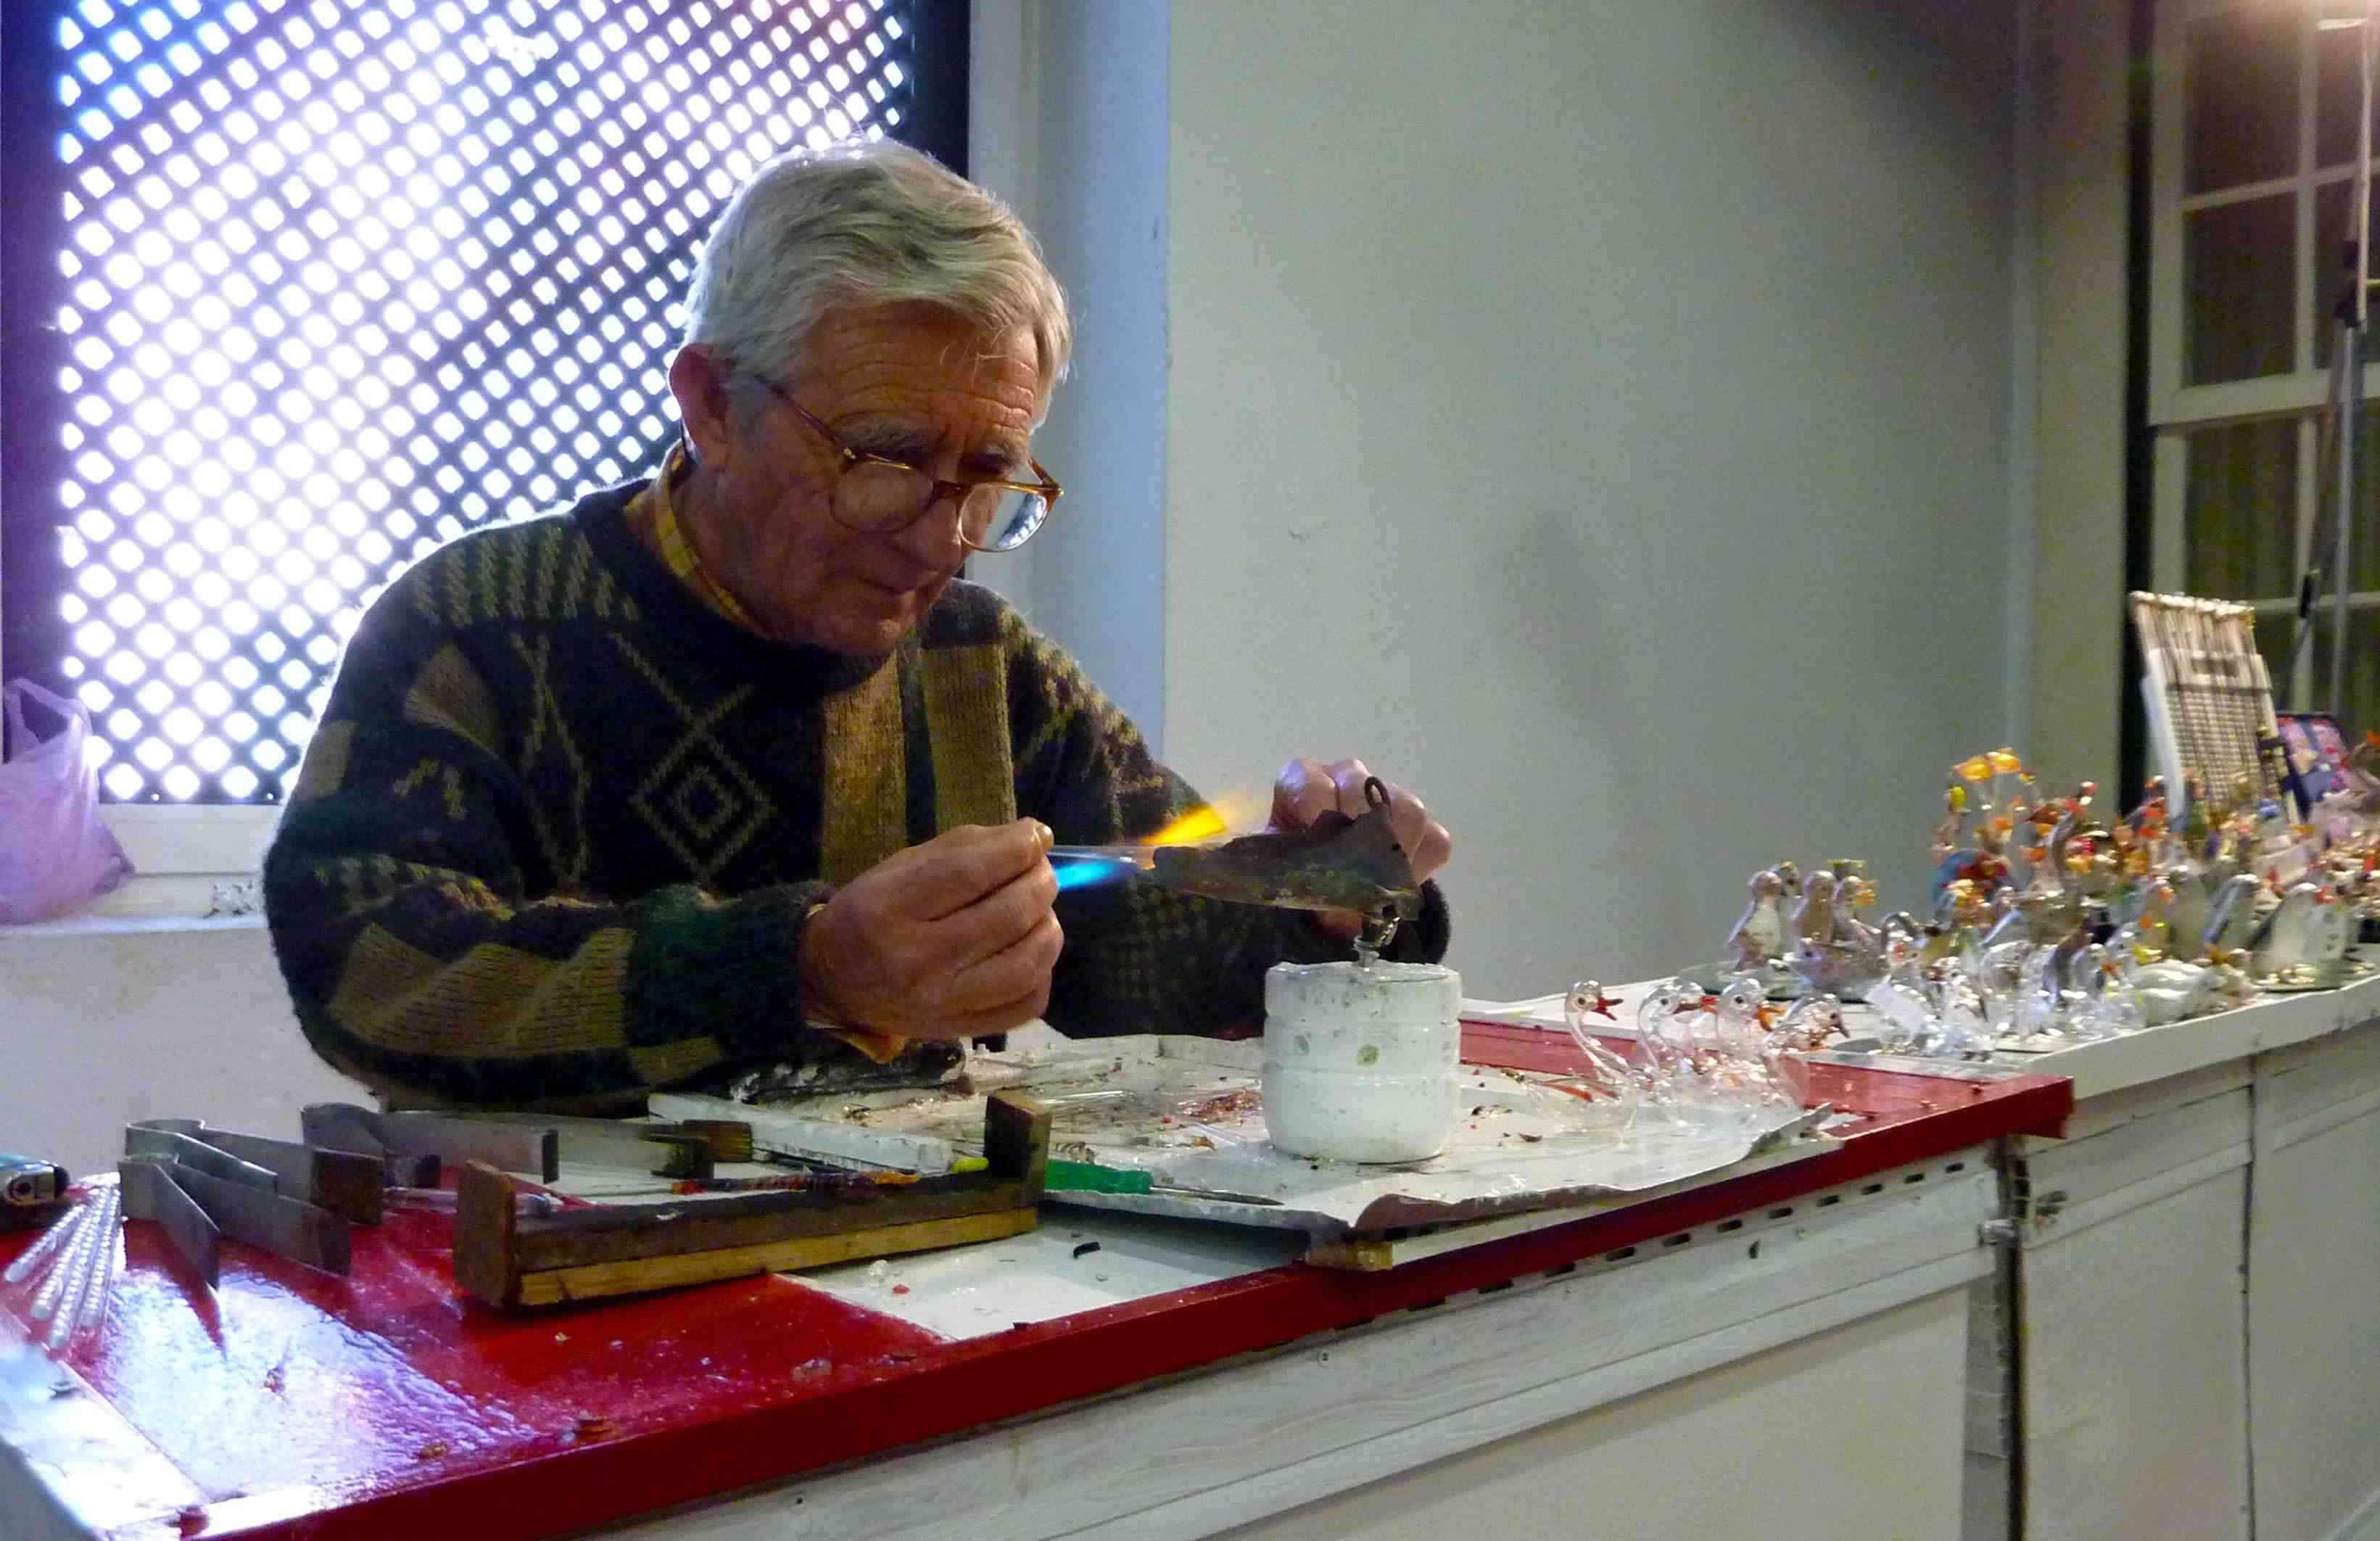 Glassmaker at Work